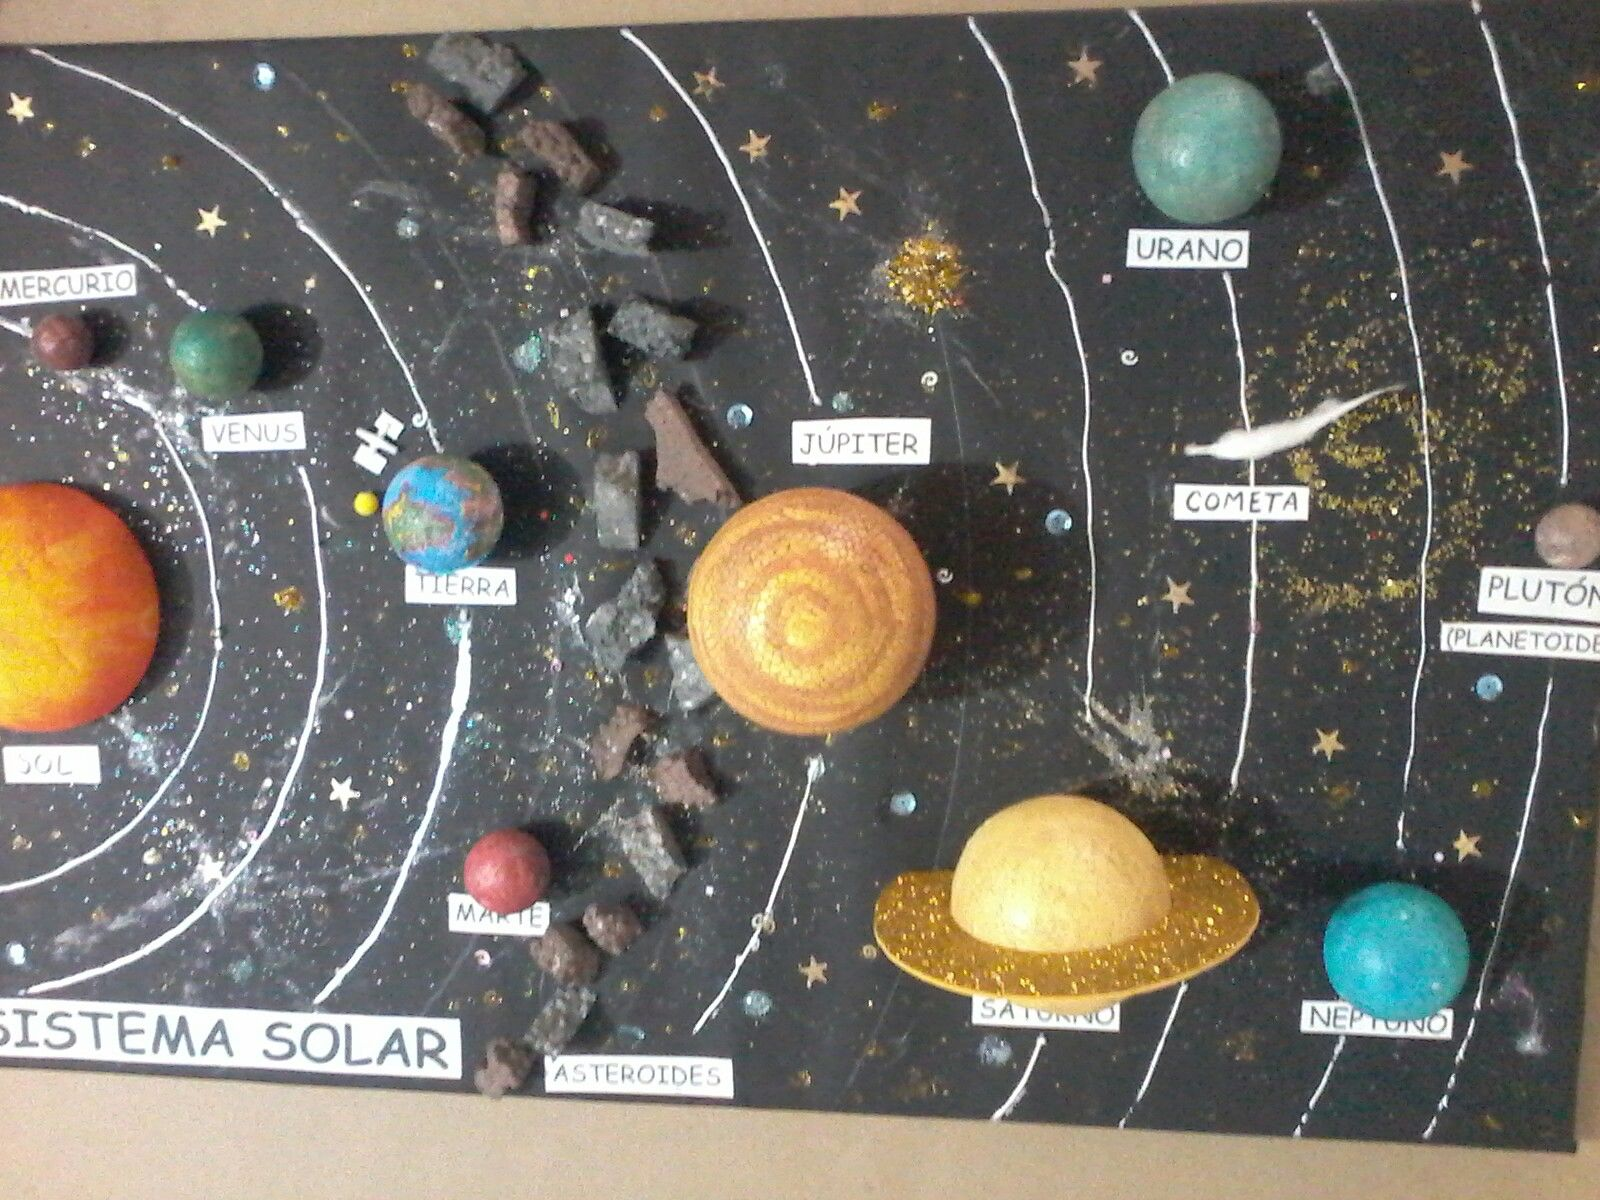 solar system model project Program an interactive model of our solar system this stem coding activity guides you through creating a simulation with planets orbiting the sun.